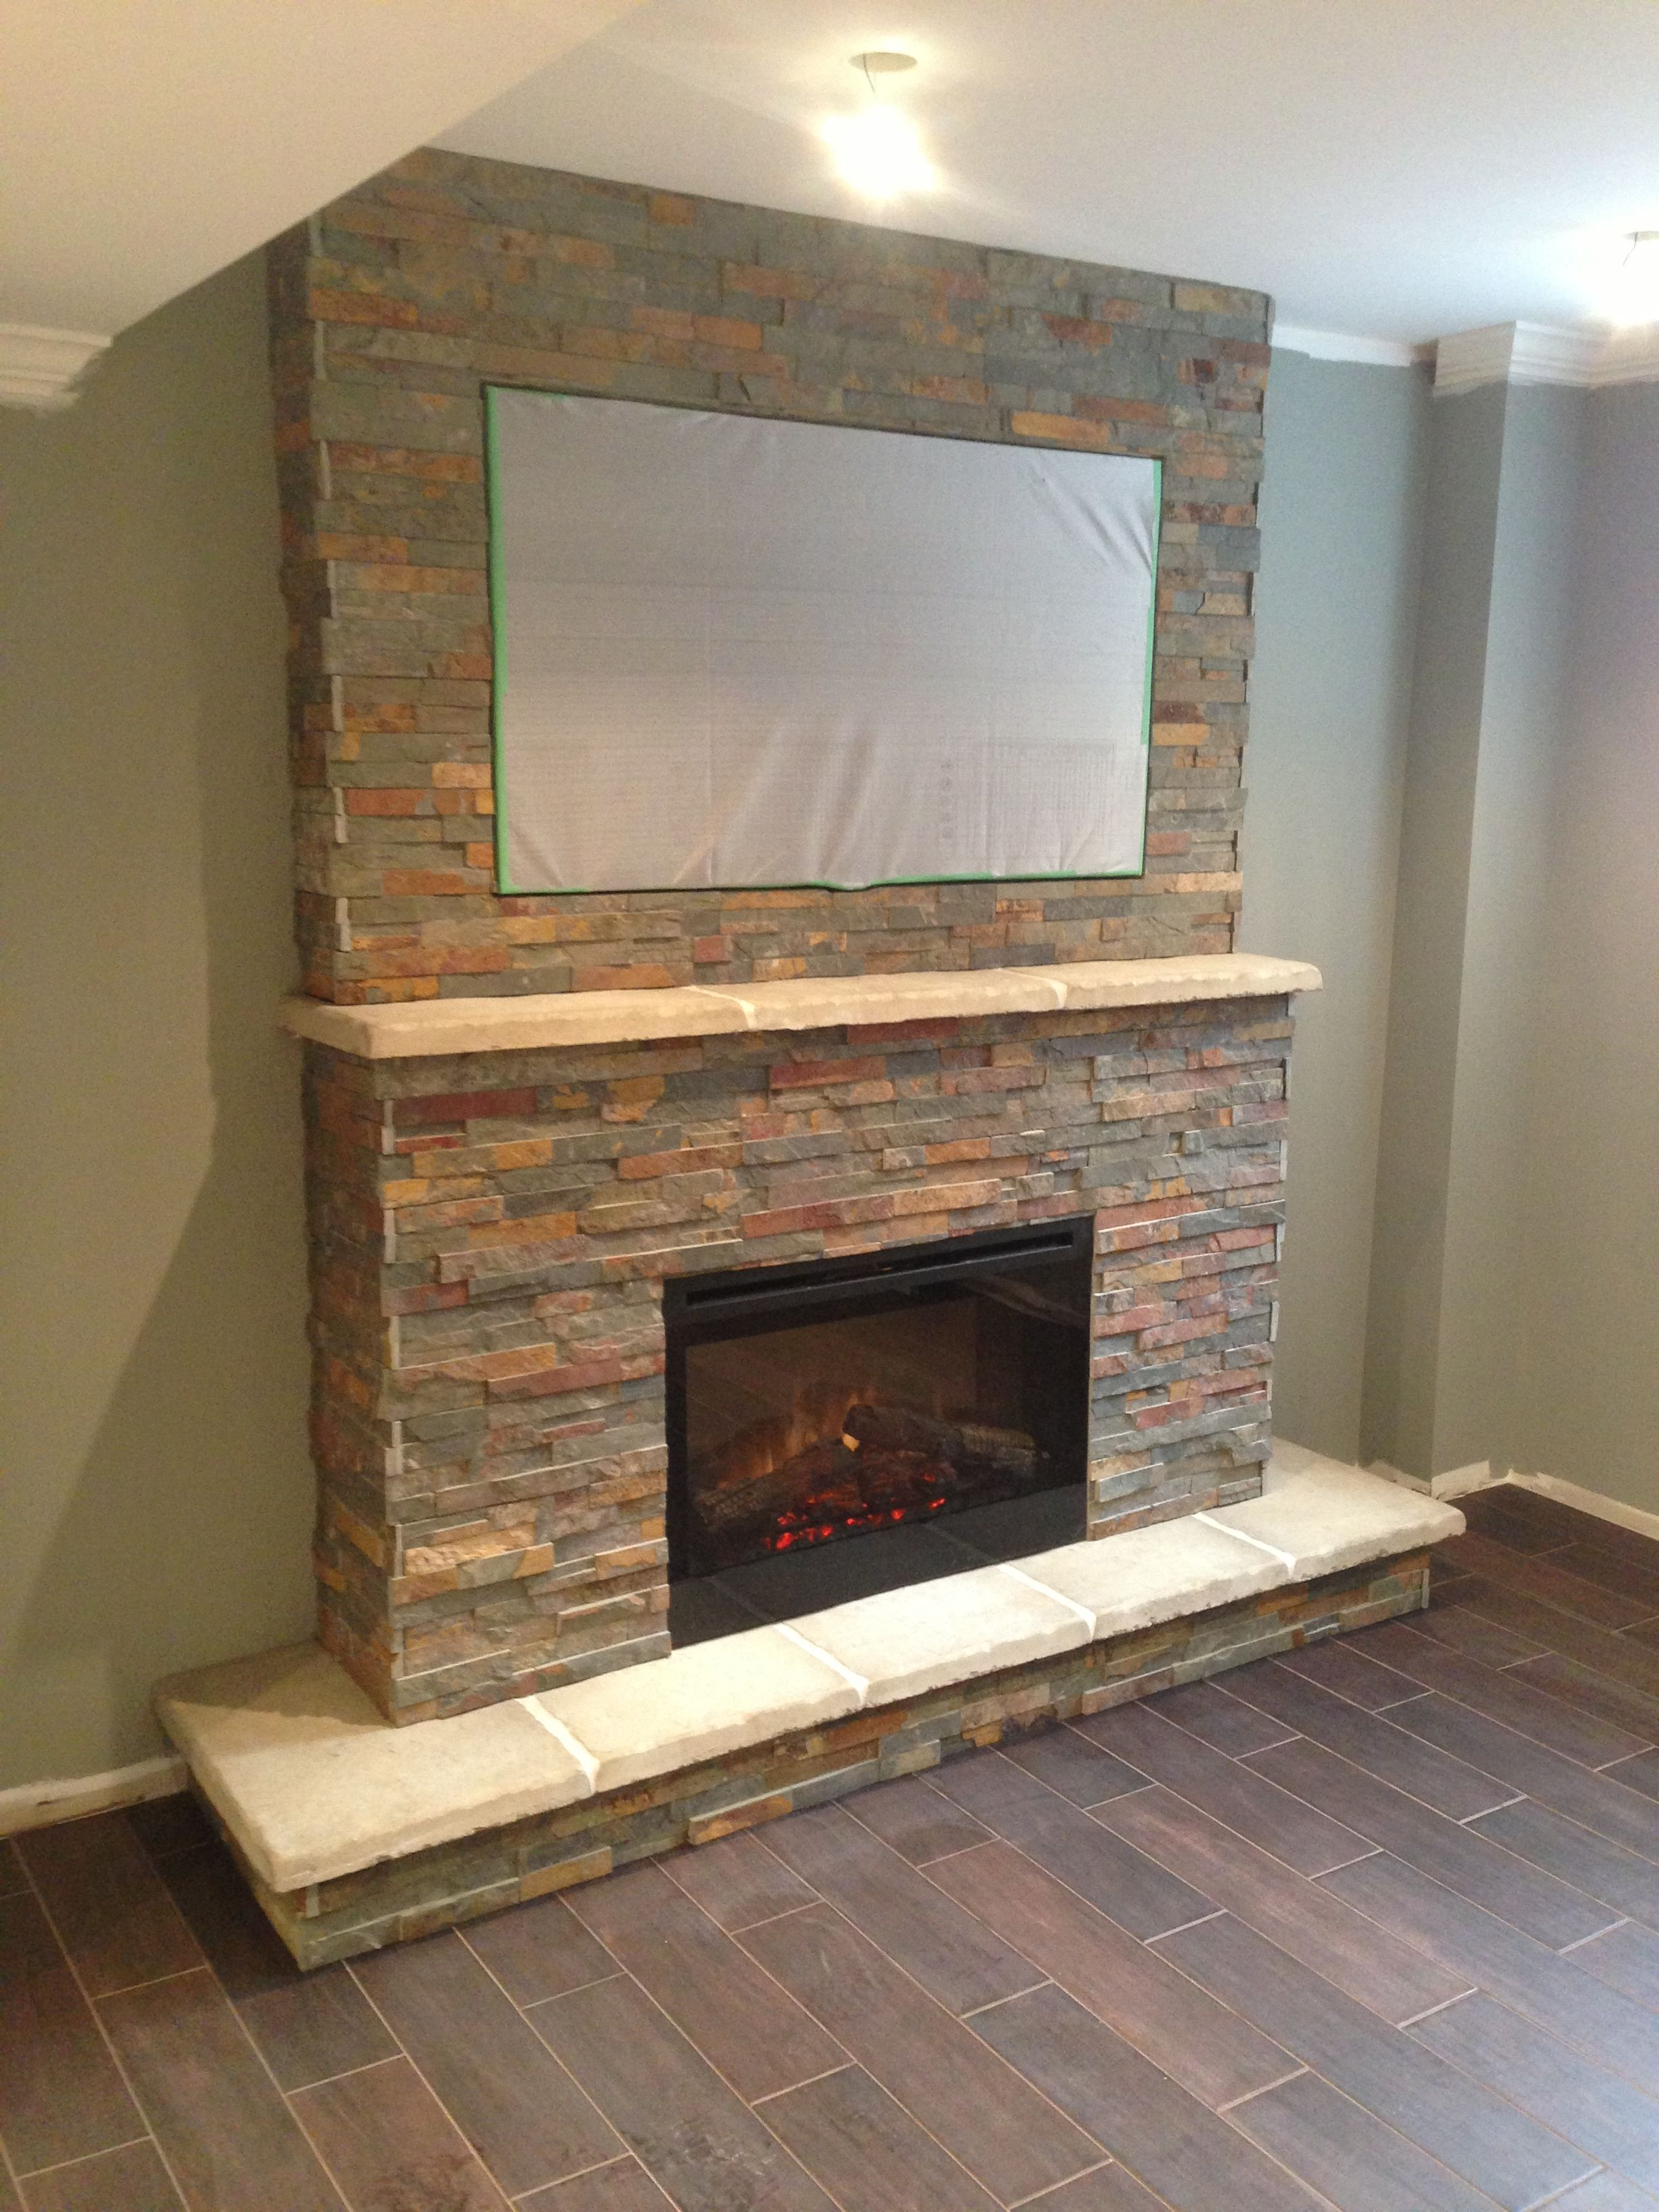 mantel install book an fireplace image how a electric to of design talking with